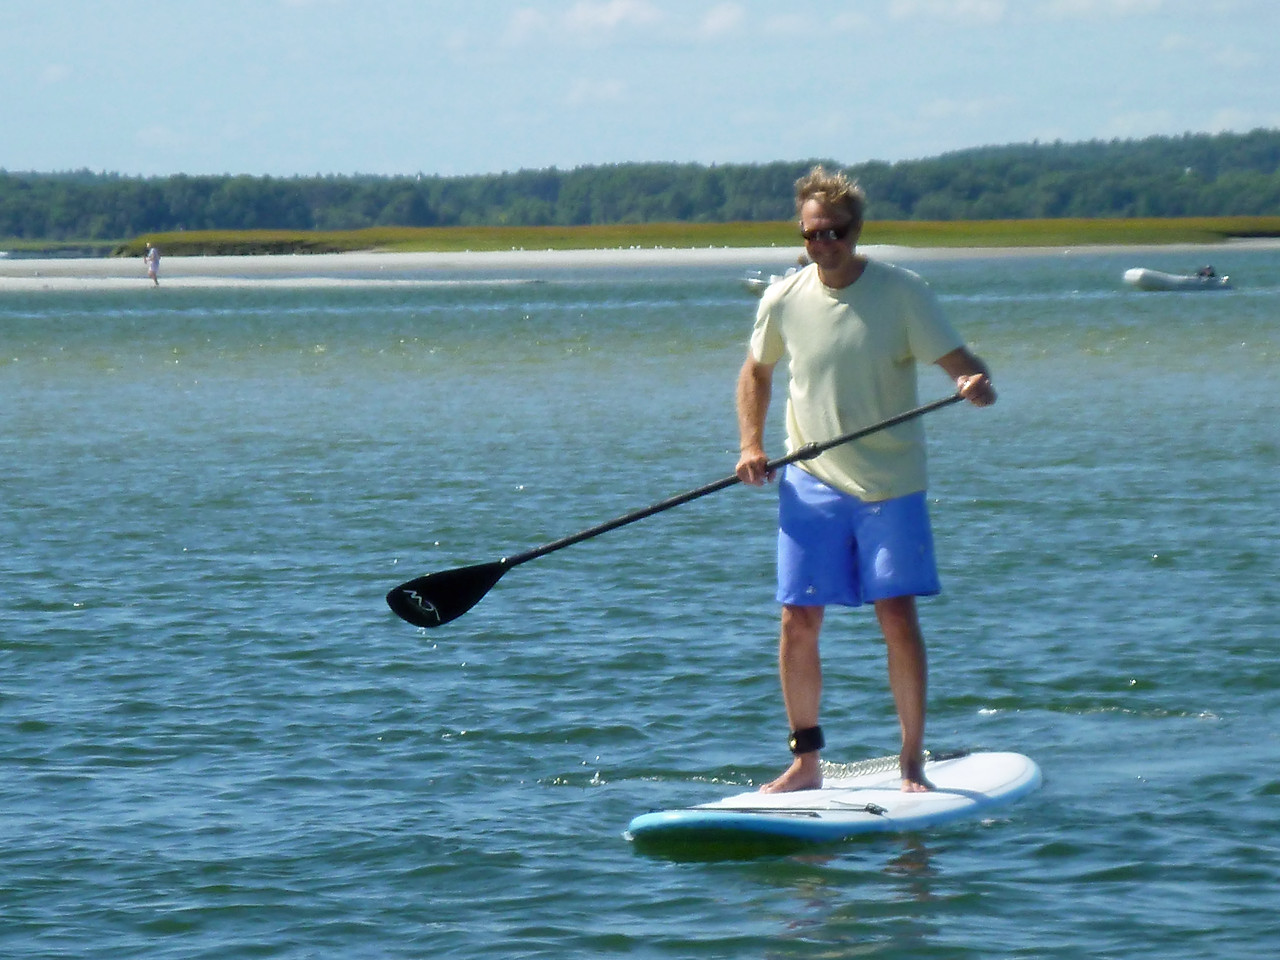 David M: Paddle boarding really is easy. Even David A can do it!